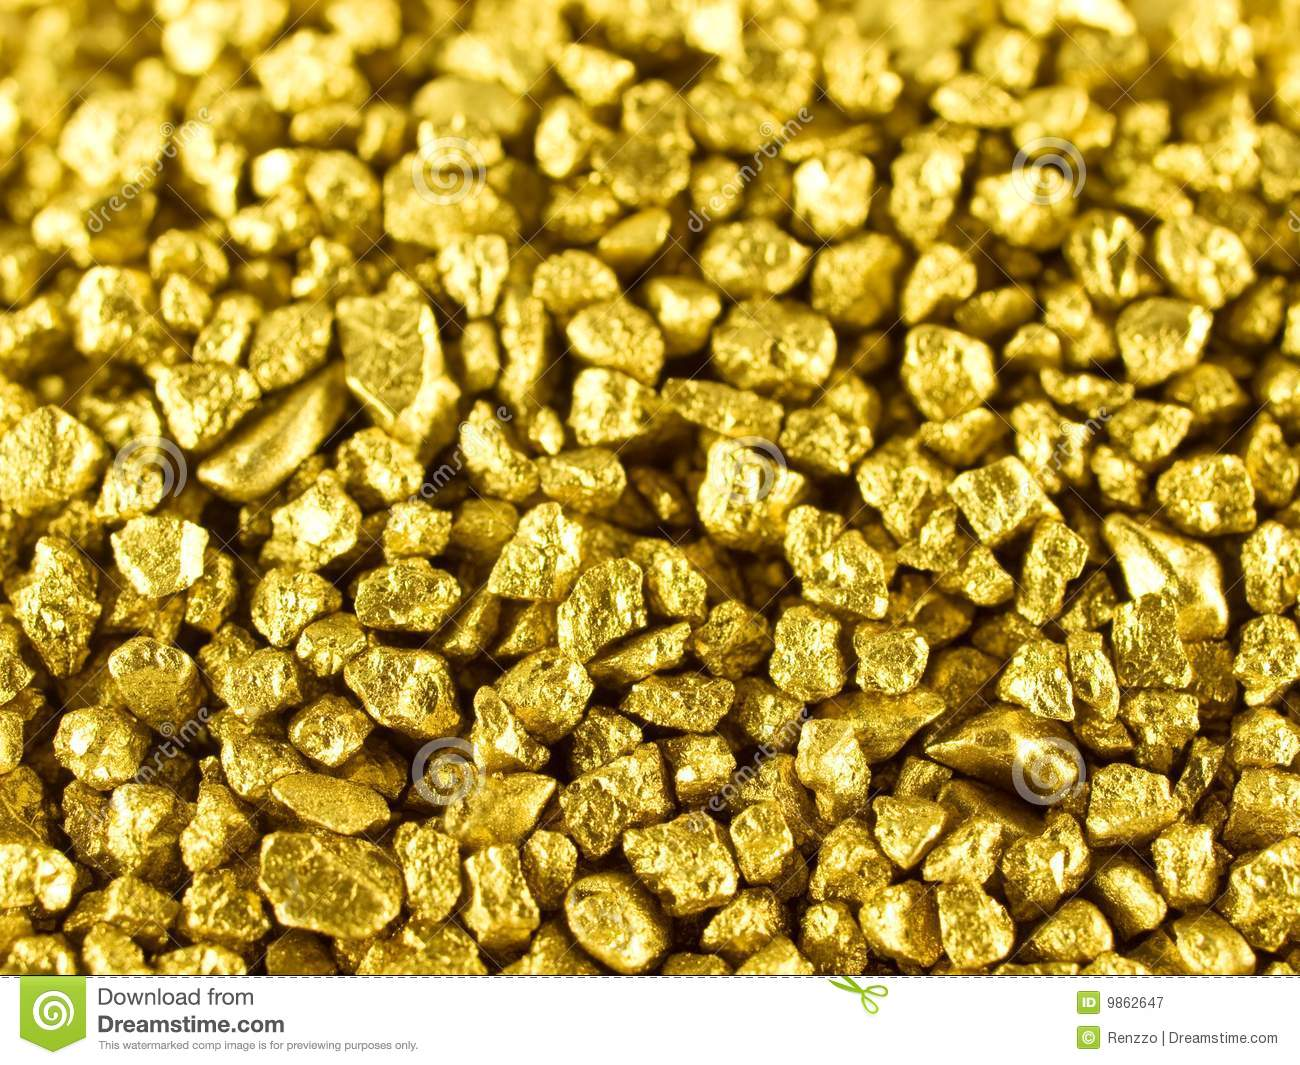 Falling Money Wallpaper Hd Gold Nuggets Macro Stock Image Image Of Texture Golden